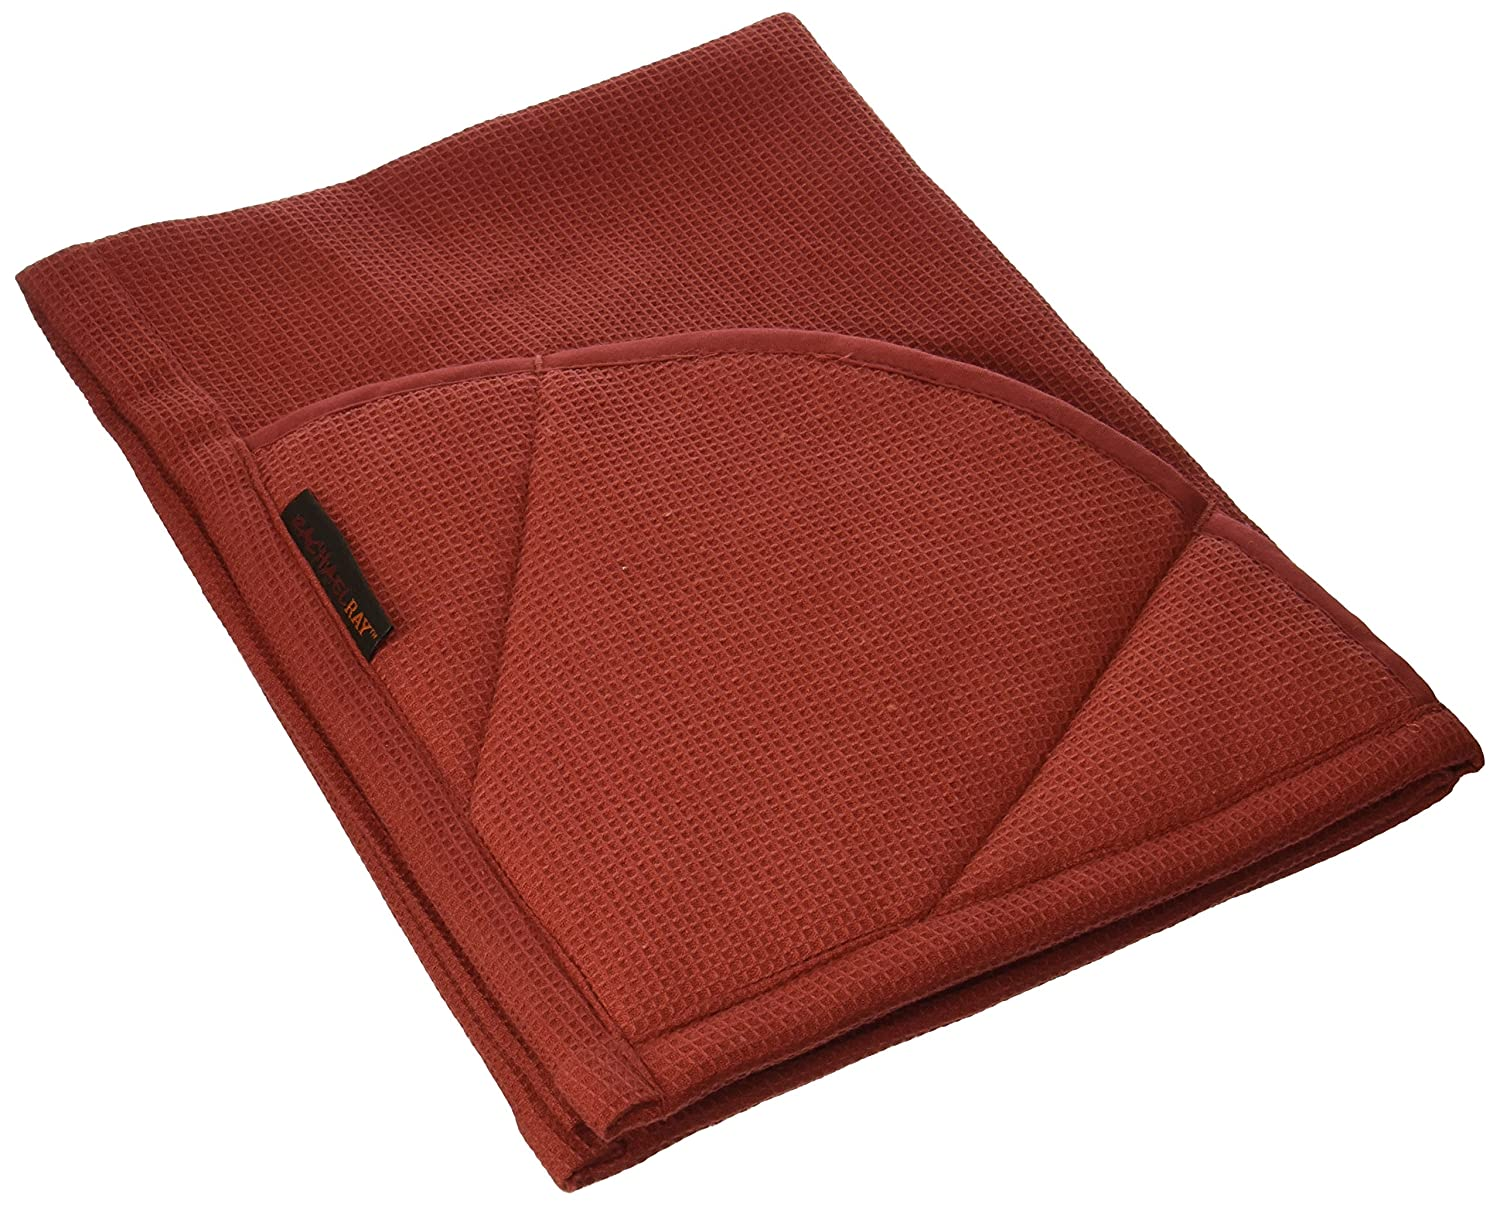 Rachael Ray Kitchen Towel and Oven Glove Moppine – A 2-in-1 Ultra Absorbent Kitchen Towel with Heat Resistant Pot-Holder Padded Pockets to Handle Hot Cookware and Bakeware,Brick Red